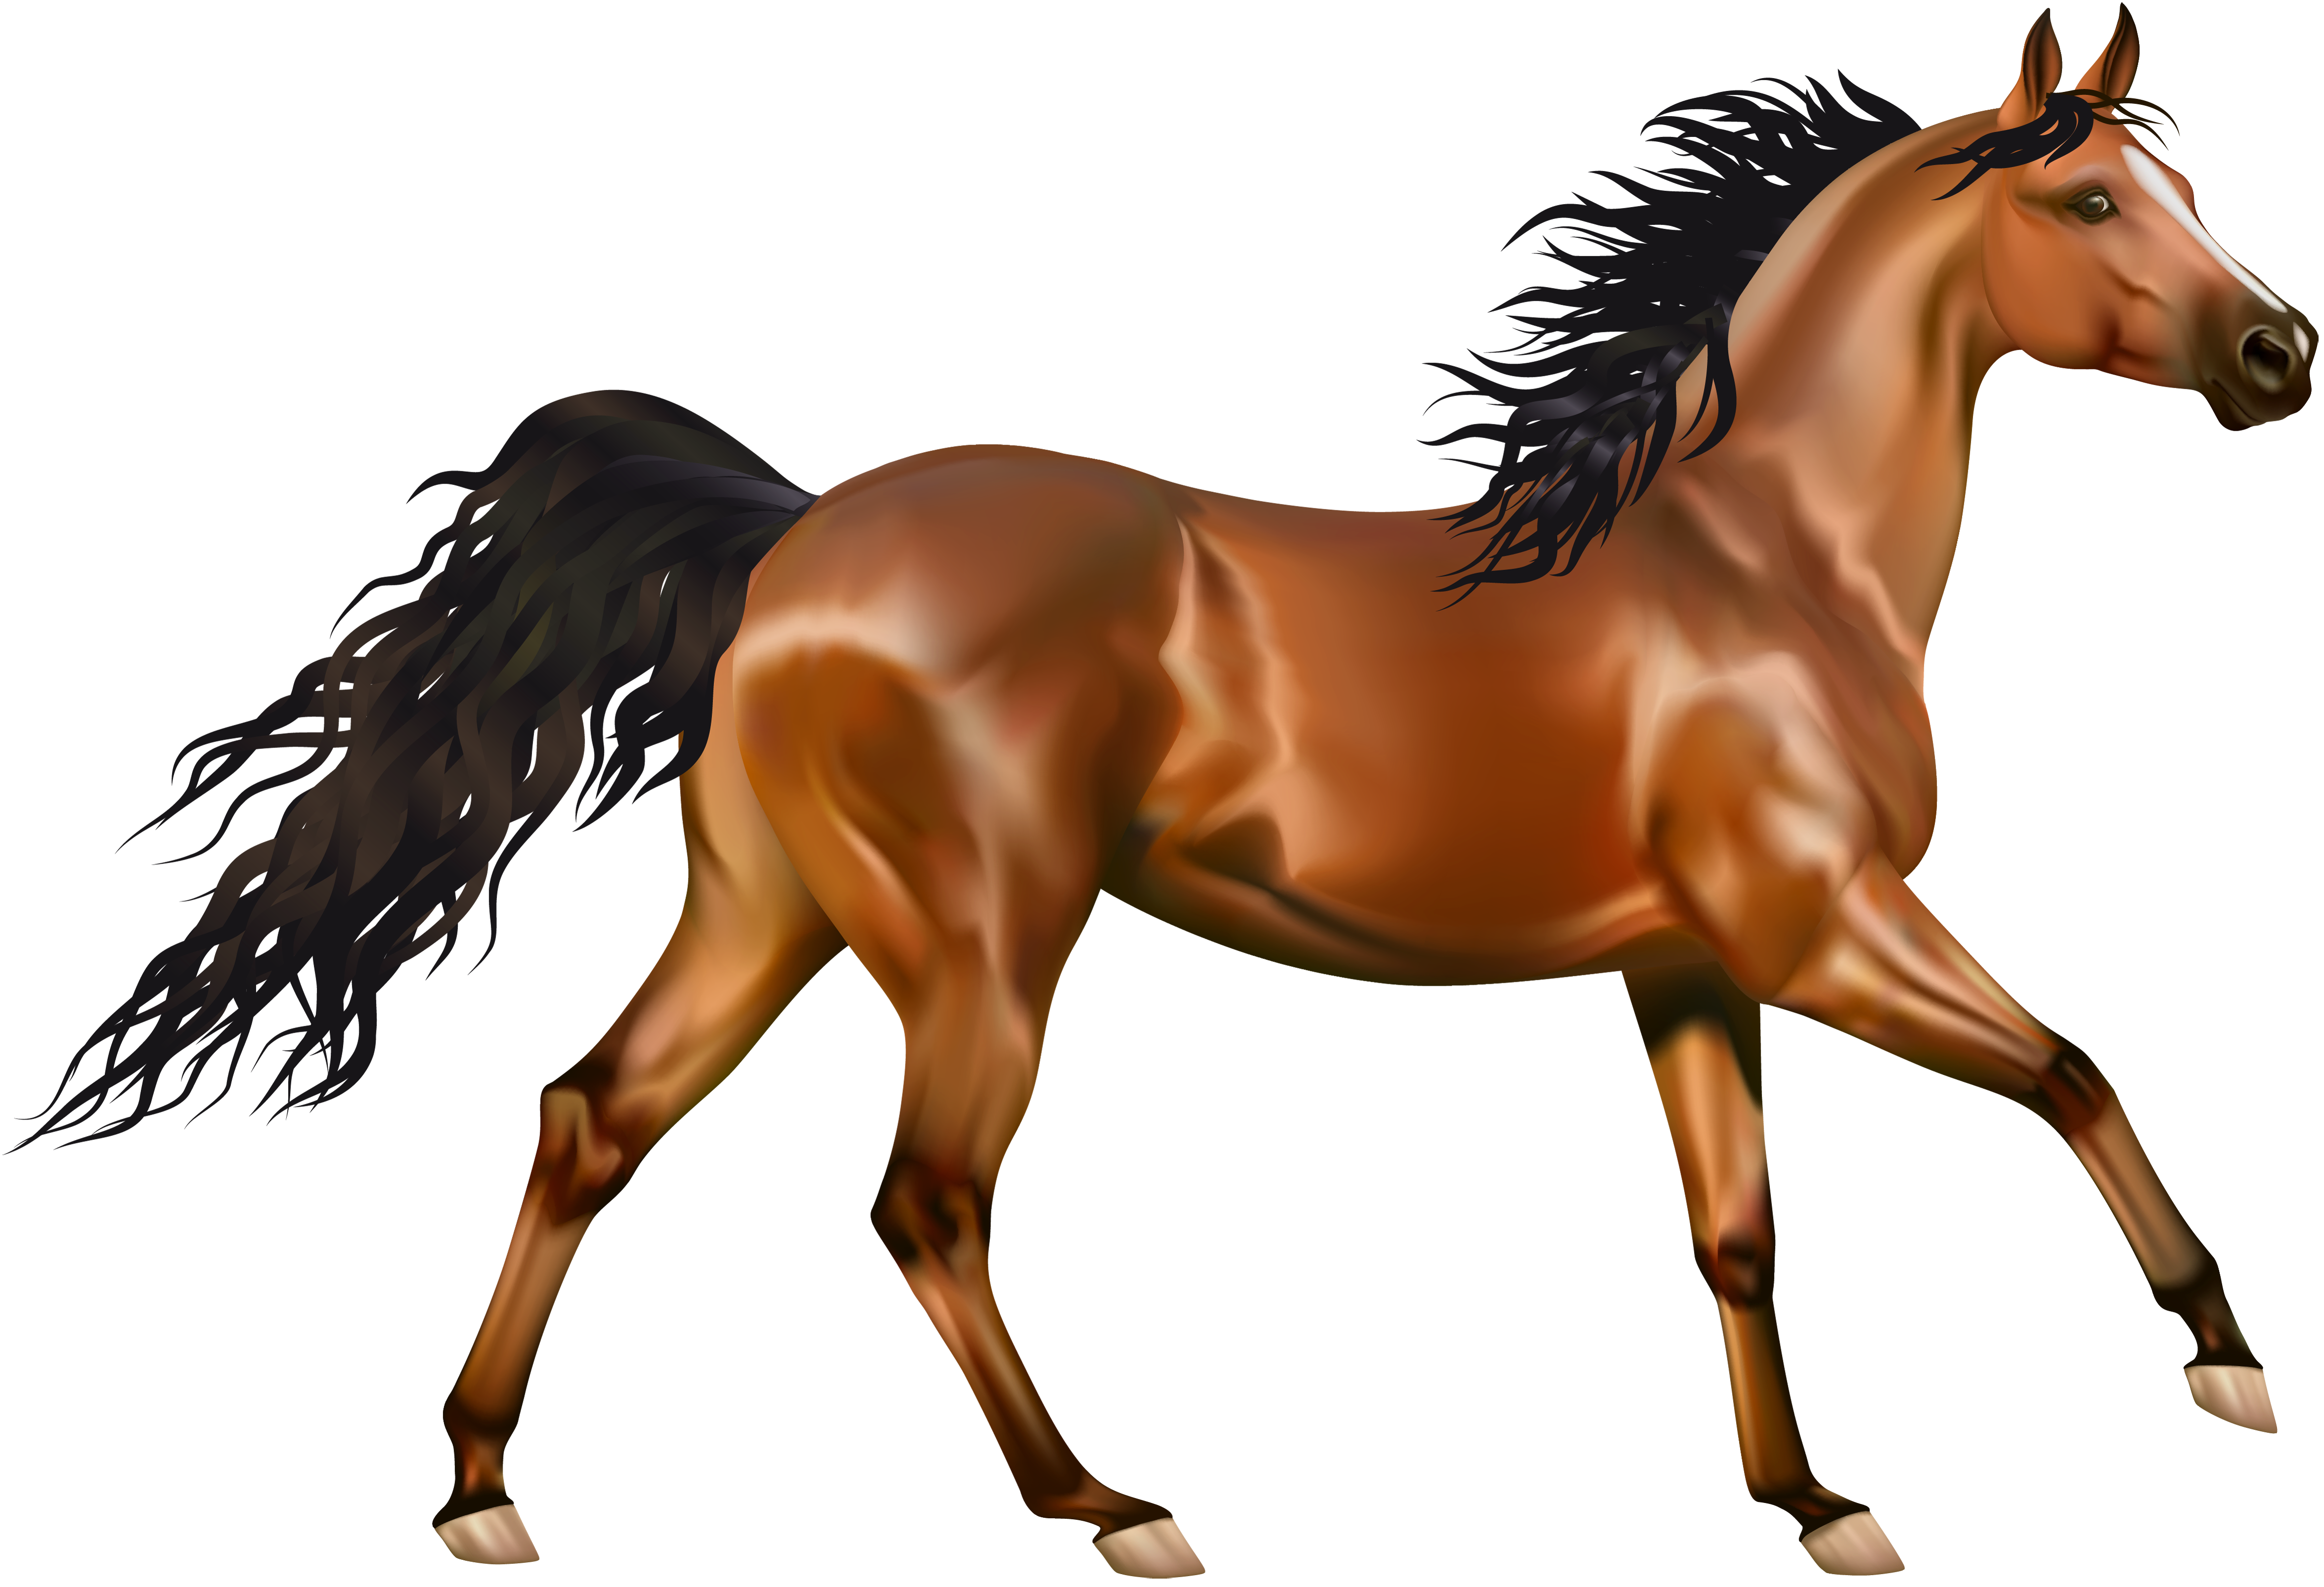 clipart picture of a horse - photo #48